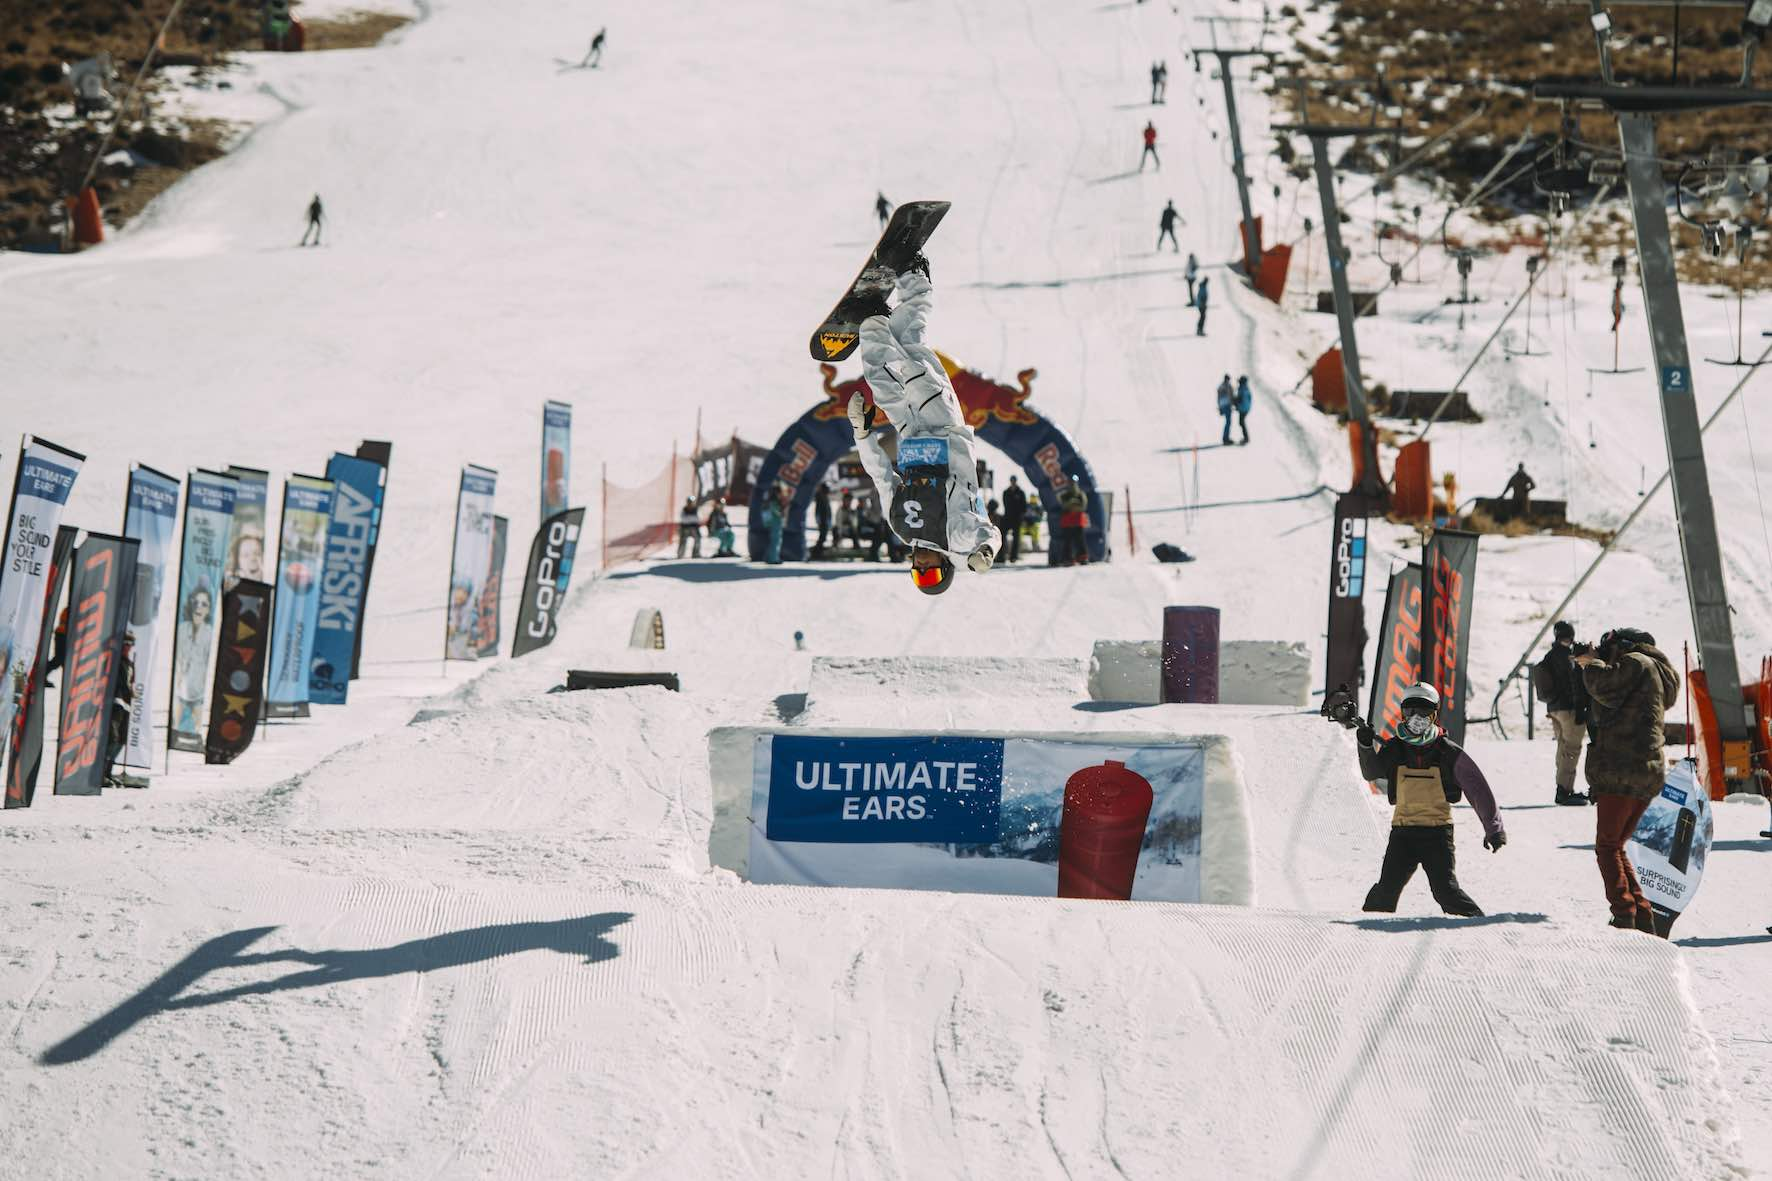 Anthon Bosch snowboarding in the 2019 2019 Ultimate Ears Winter Whip Snowboard and Ski Festival